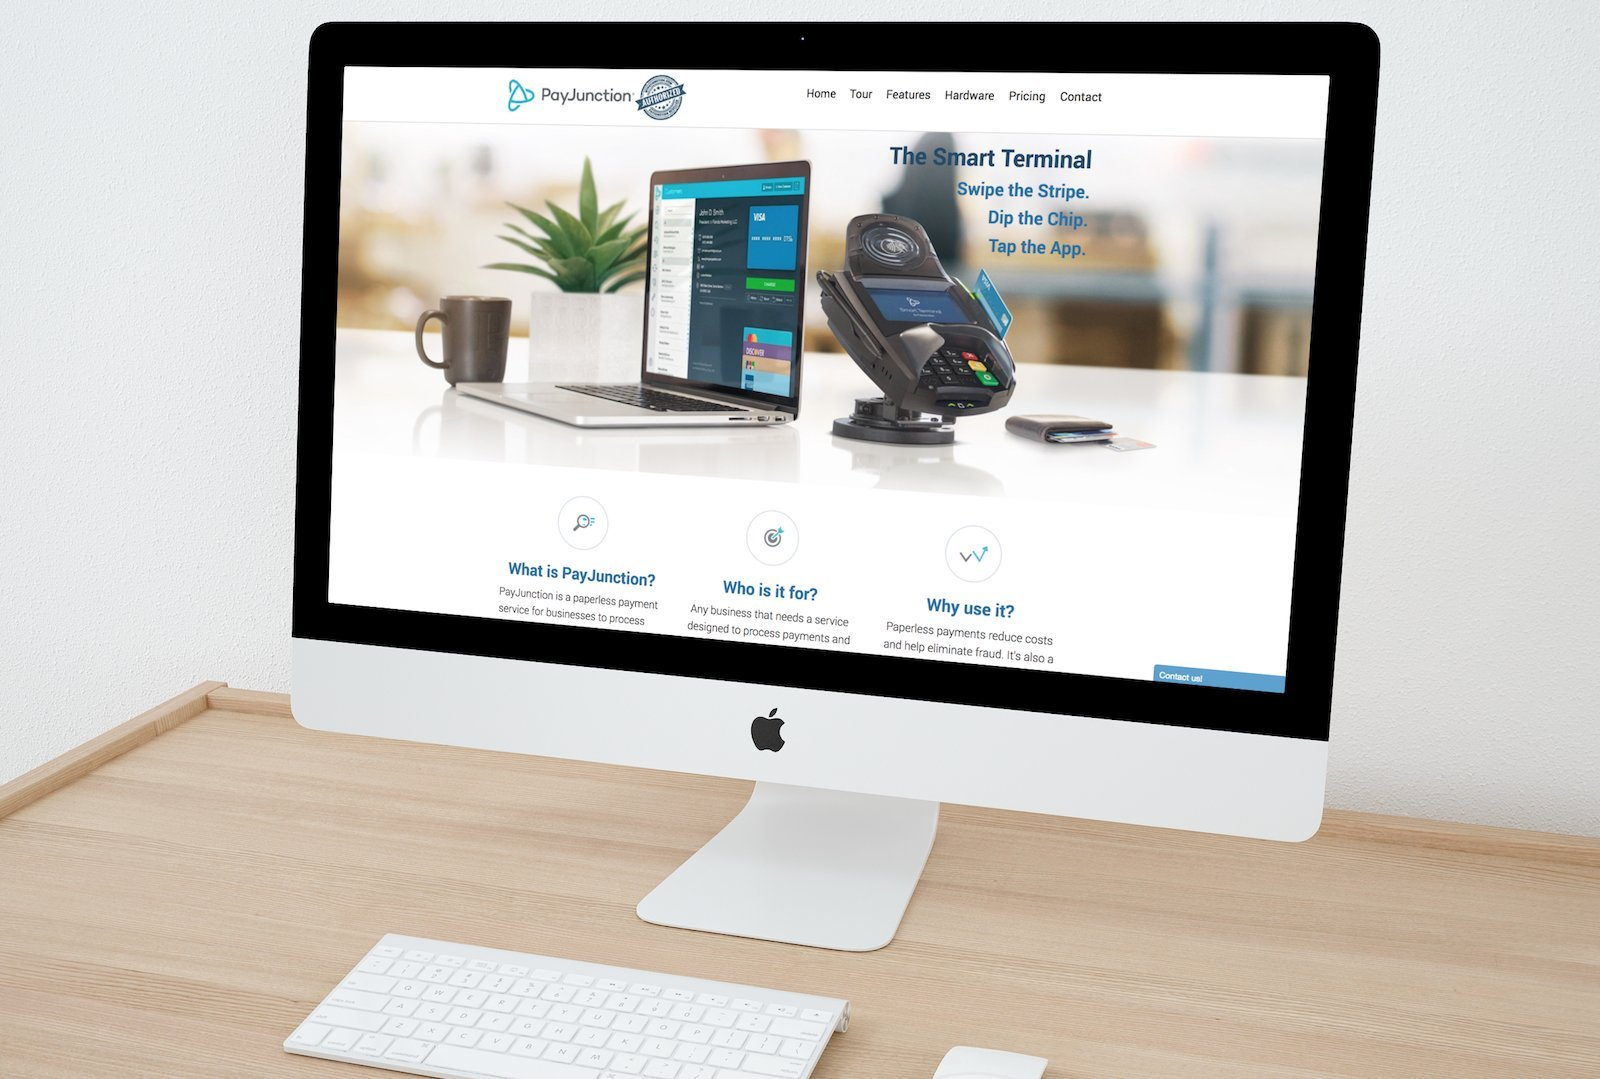 MyPayJunction Website (Financial Services)